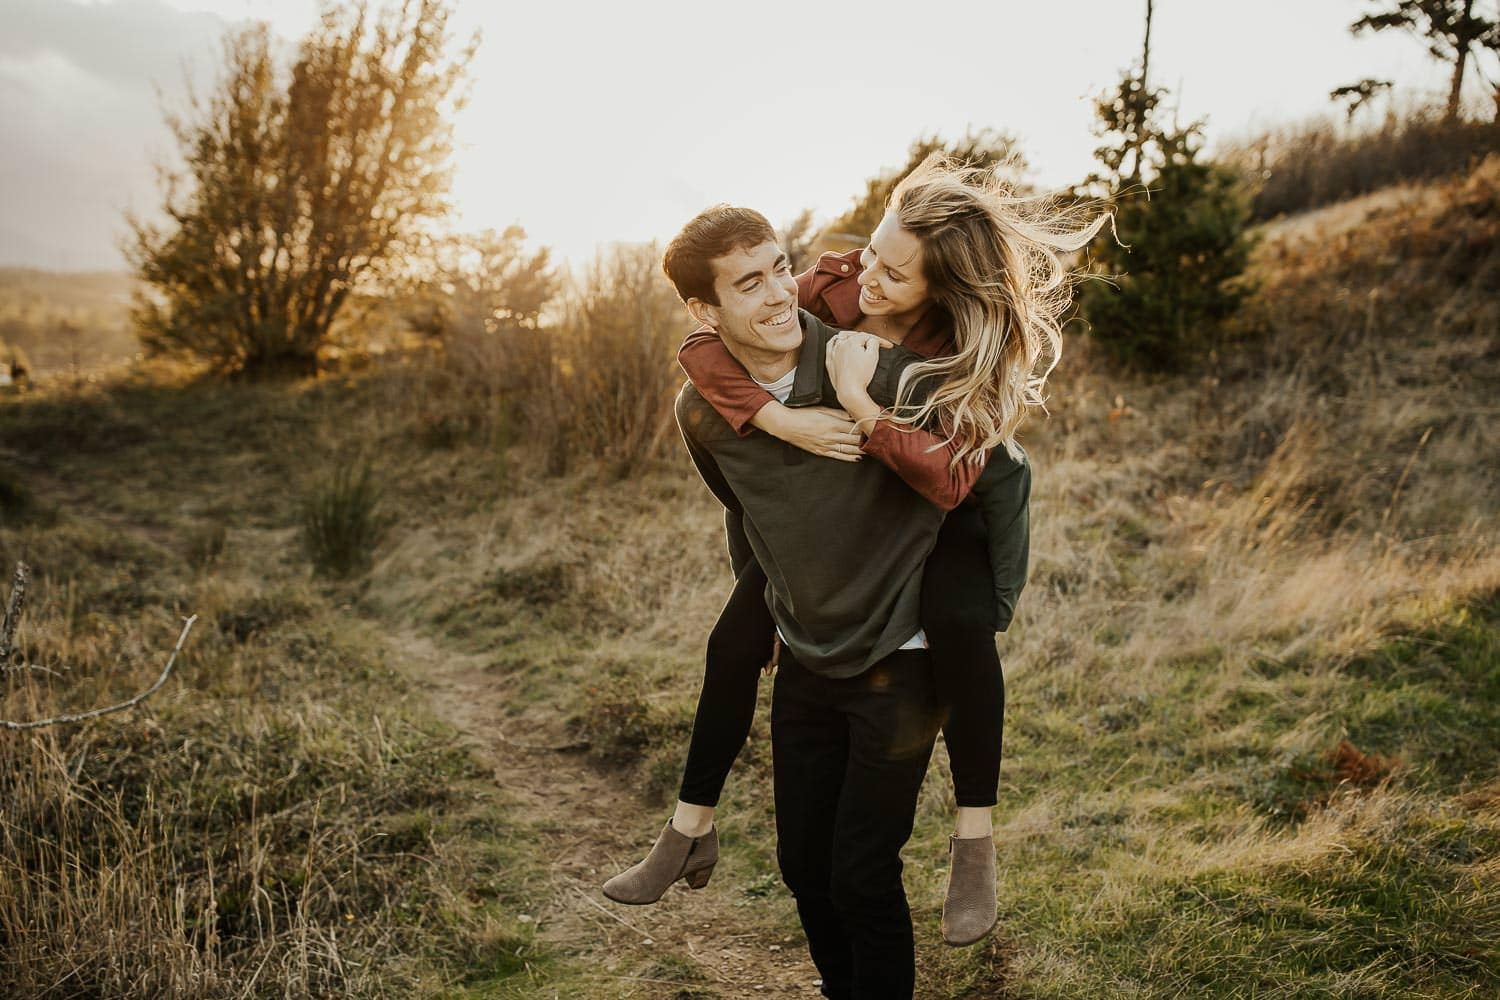 Couple having fun with a piggy back ride during anniversary photo shoot - date night ideas